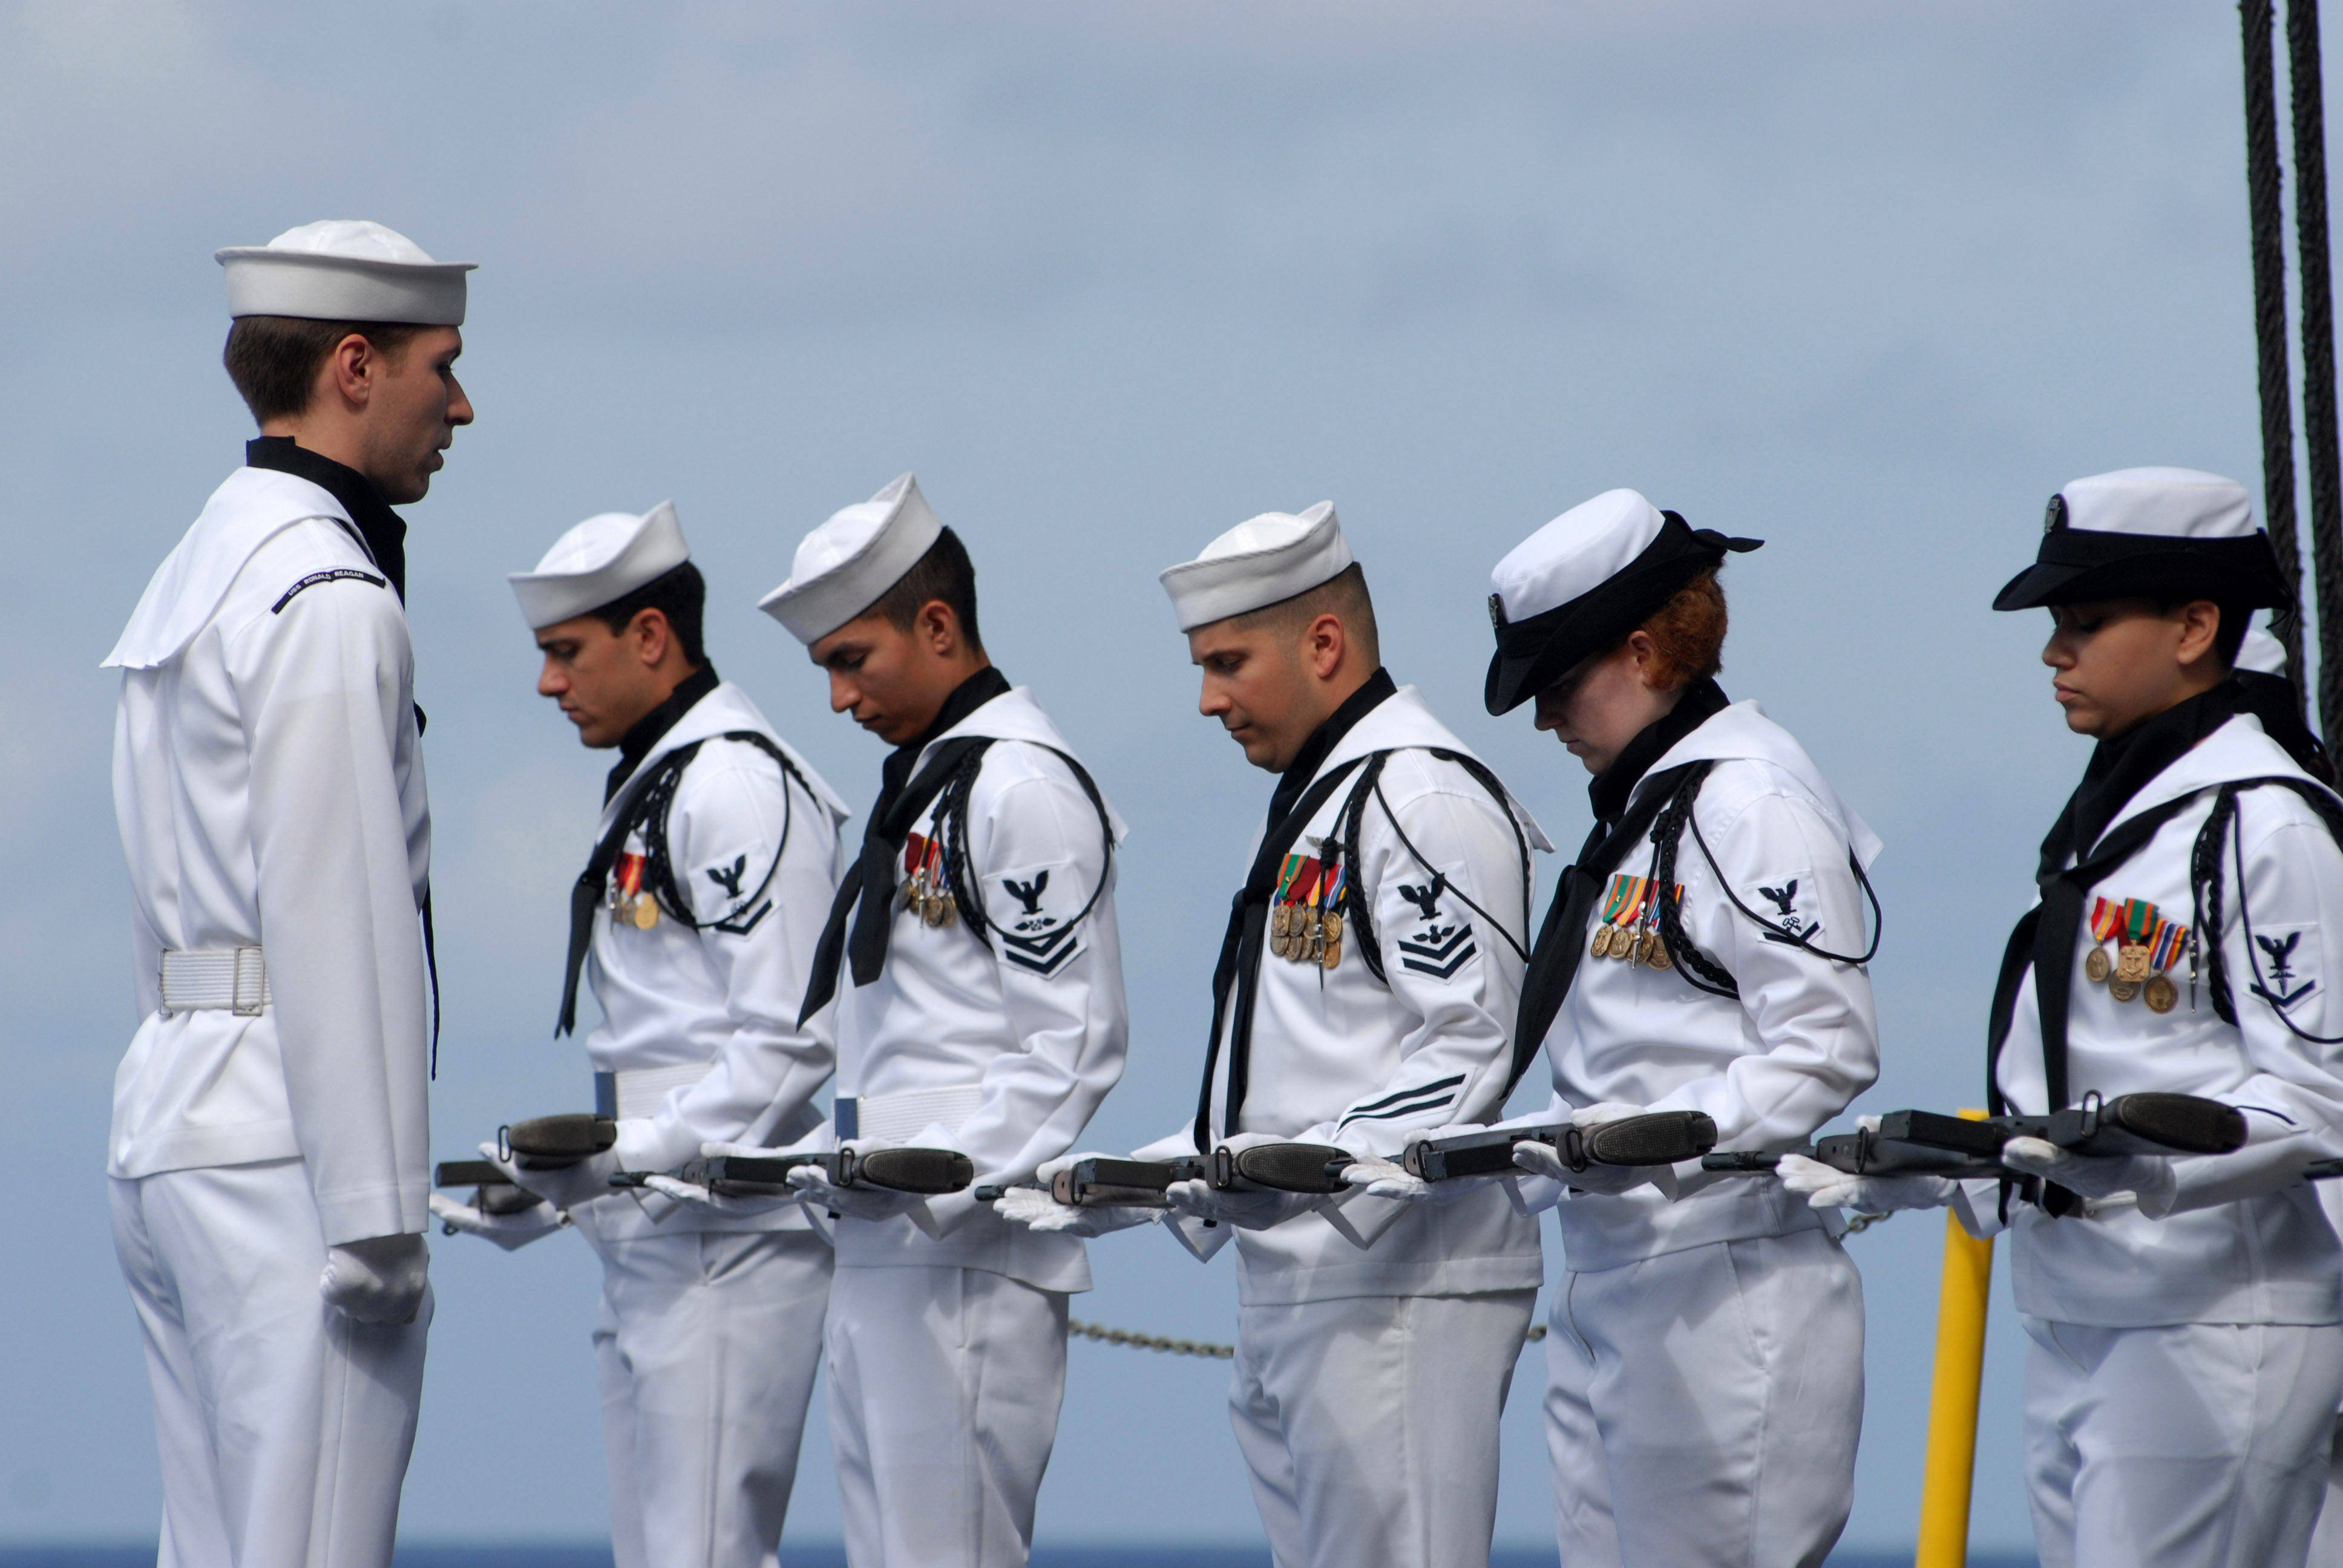 the symbolism of the united states ship nimitz for the united states military strength Giant aircraft carriers have become synonymous with us military power, but  many do not realize just how exceptional these vessels are.